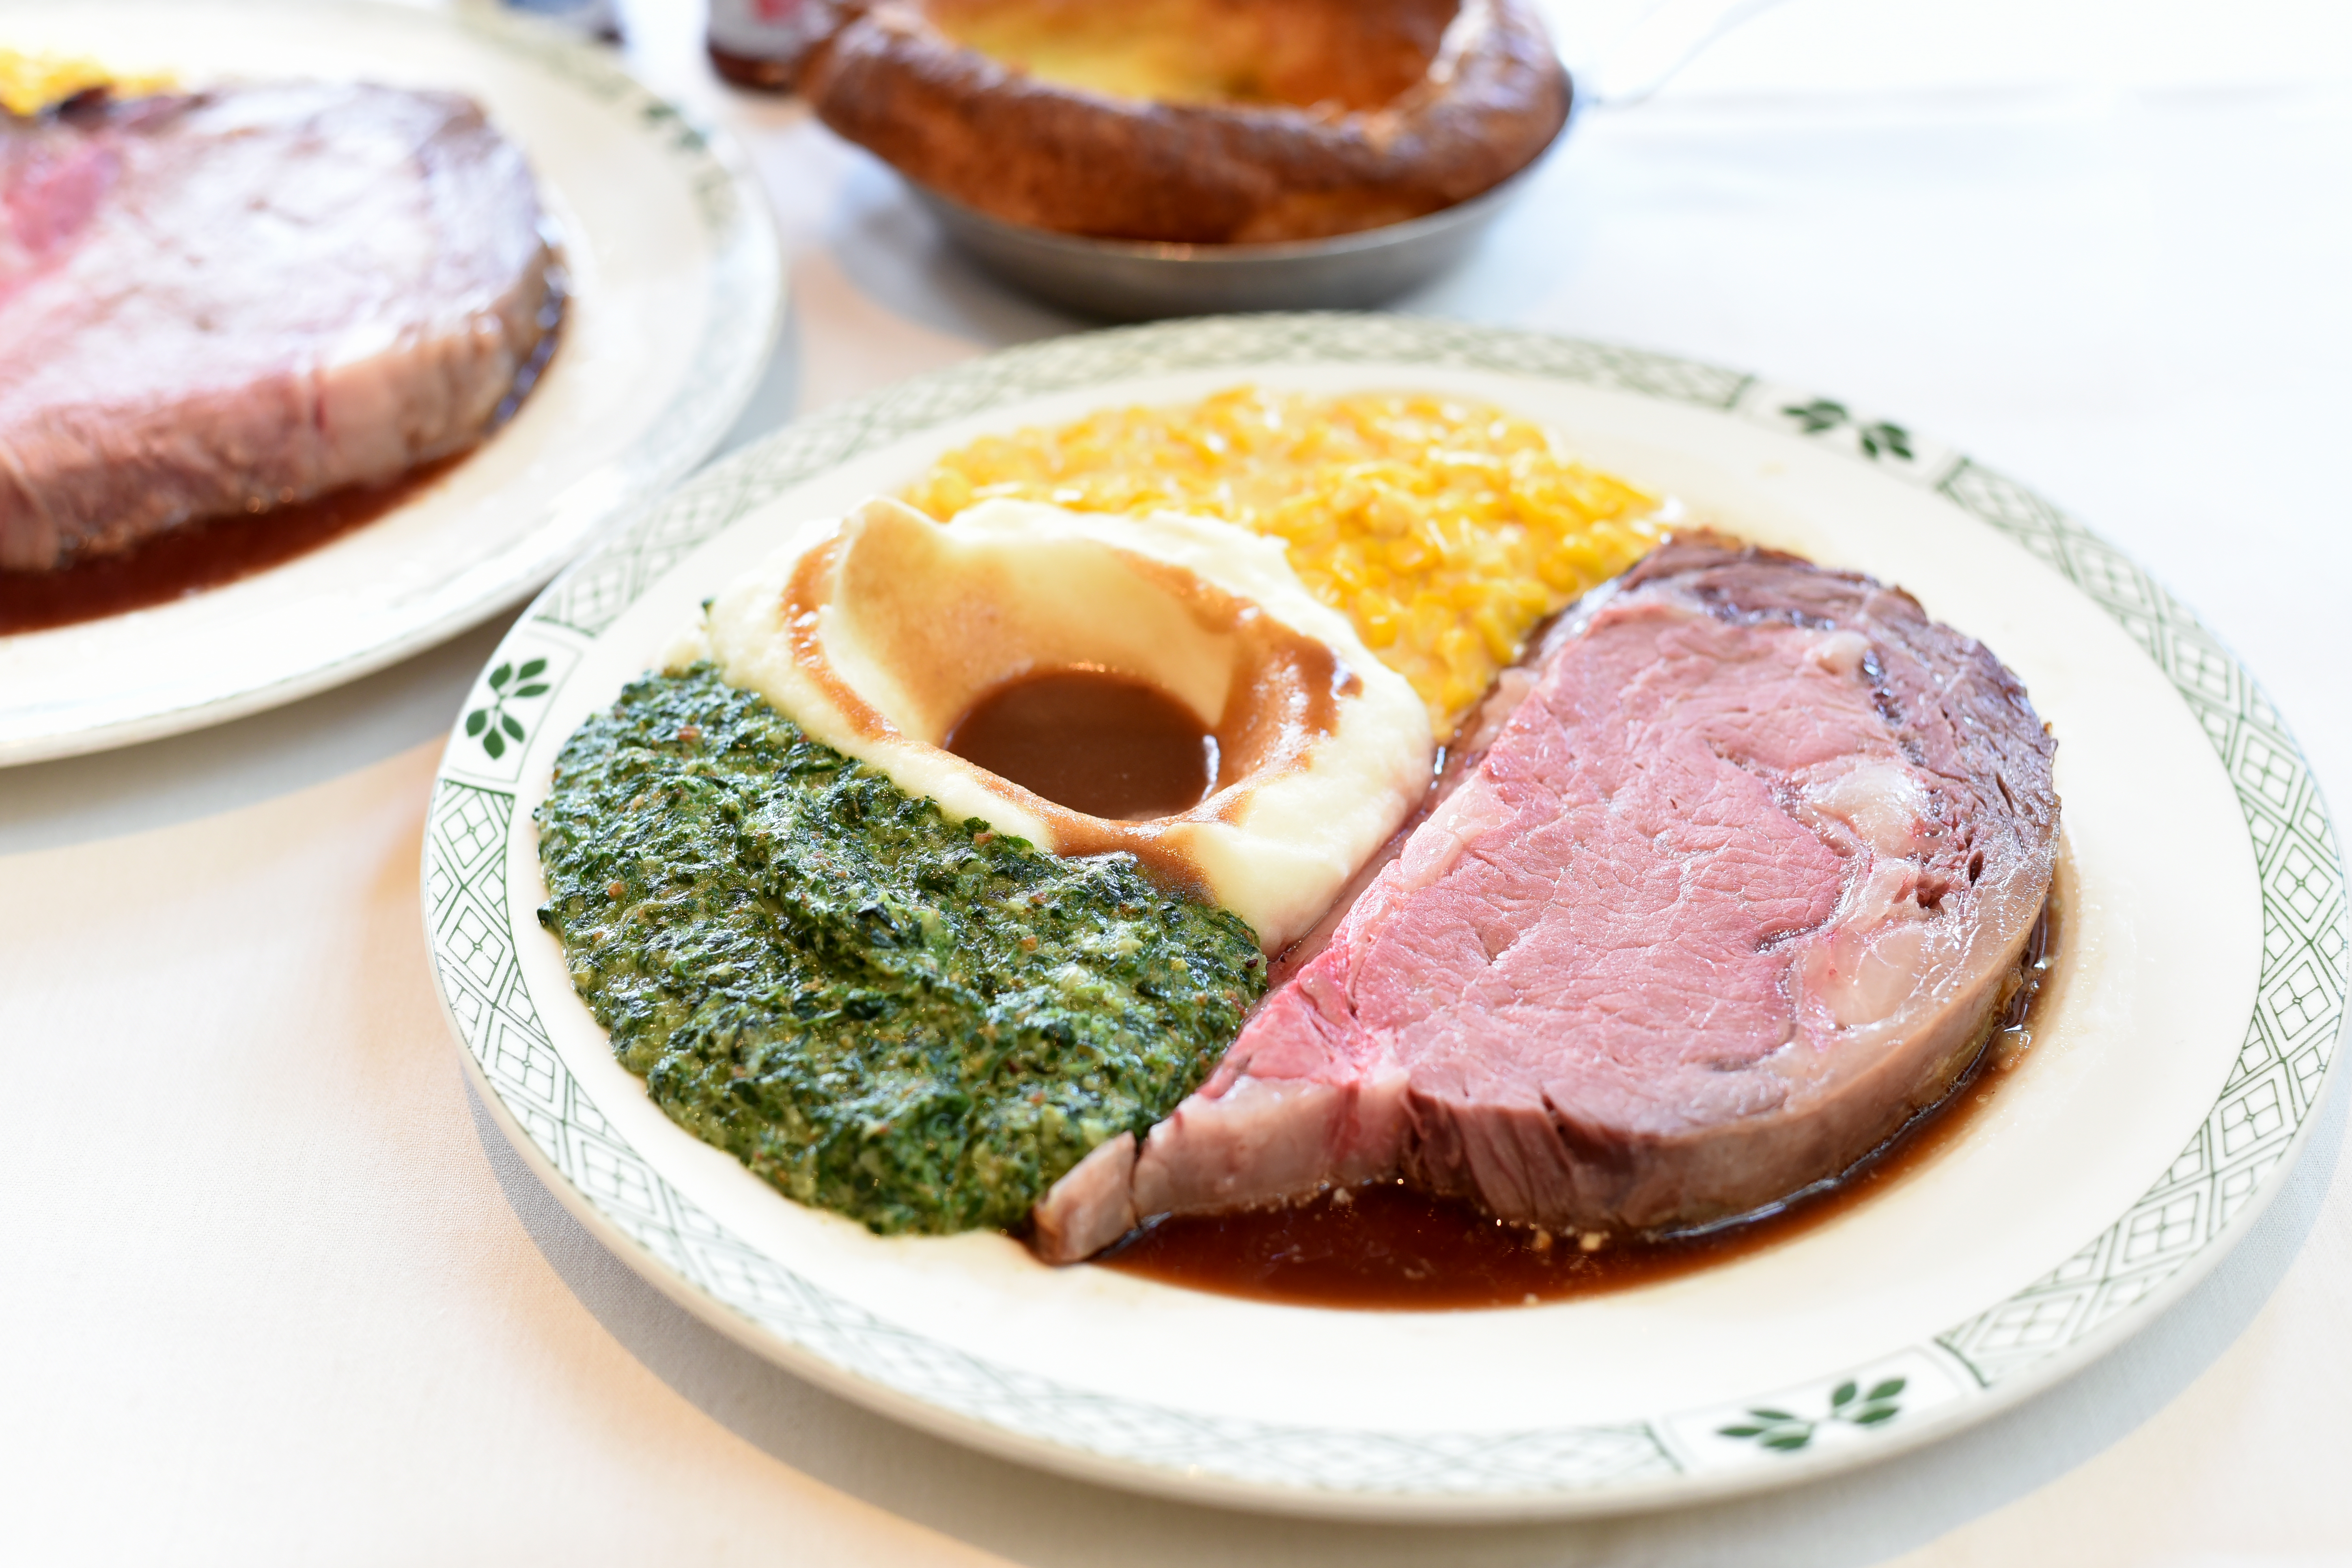 Where to Eat Classy Prime Rib Dinners in Los Angeles